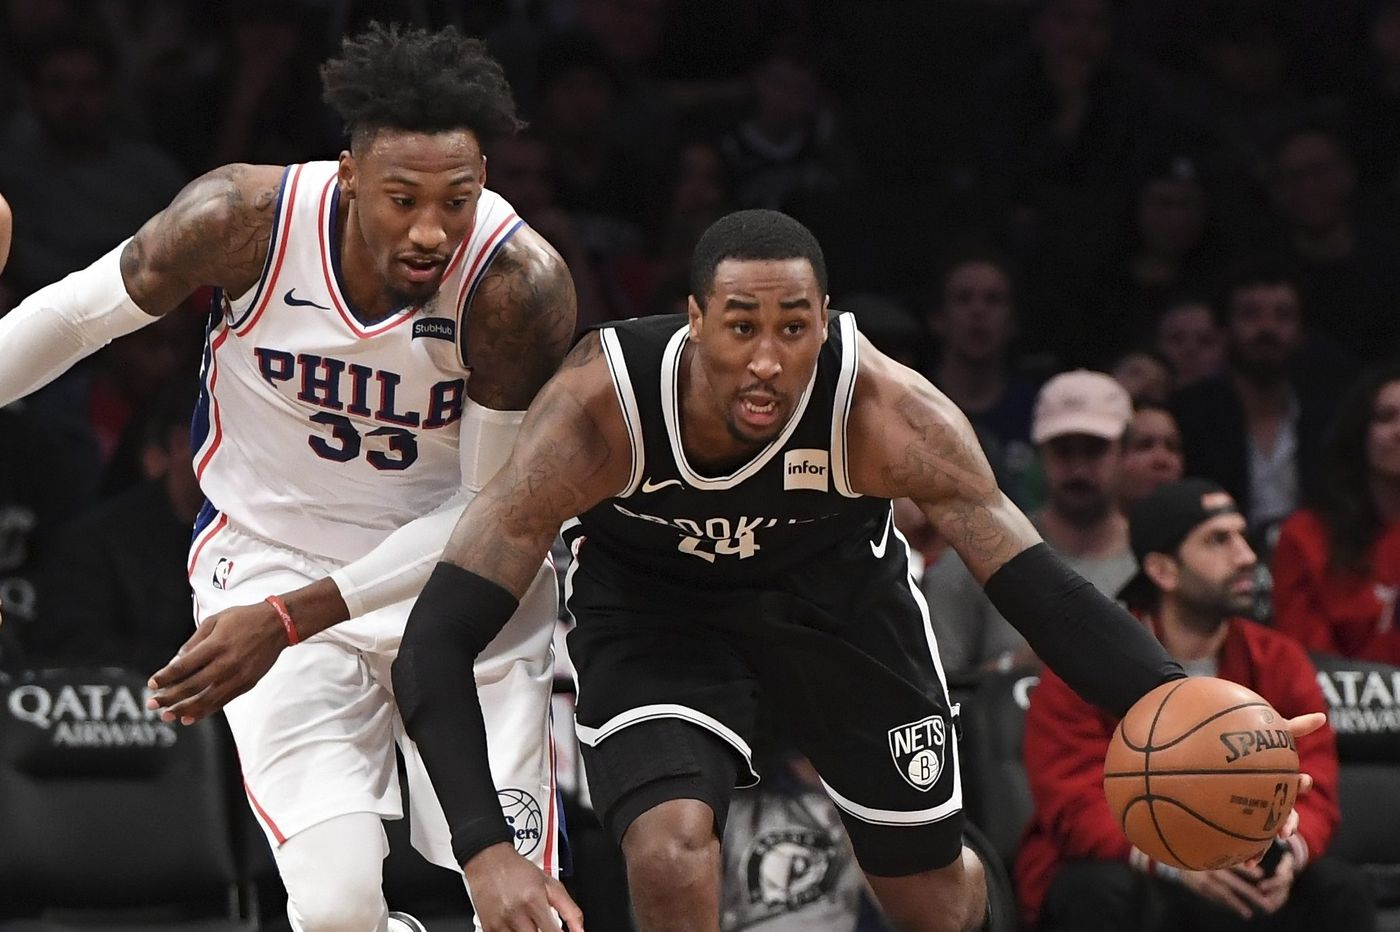 Sixers-Nets observations, best and worst awards: Rondae Hollis-Jefferson, Ben Simmons, and a lackluster effort